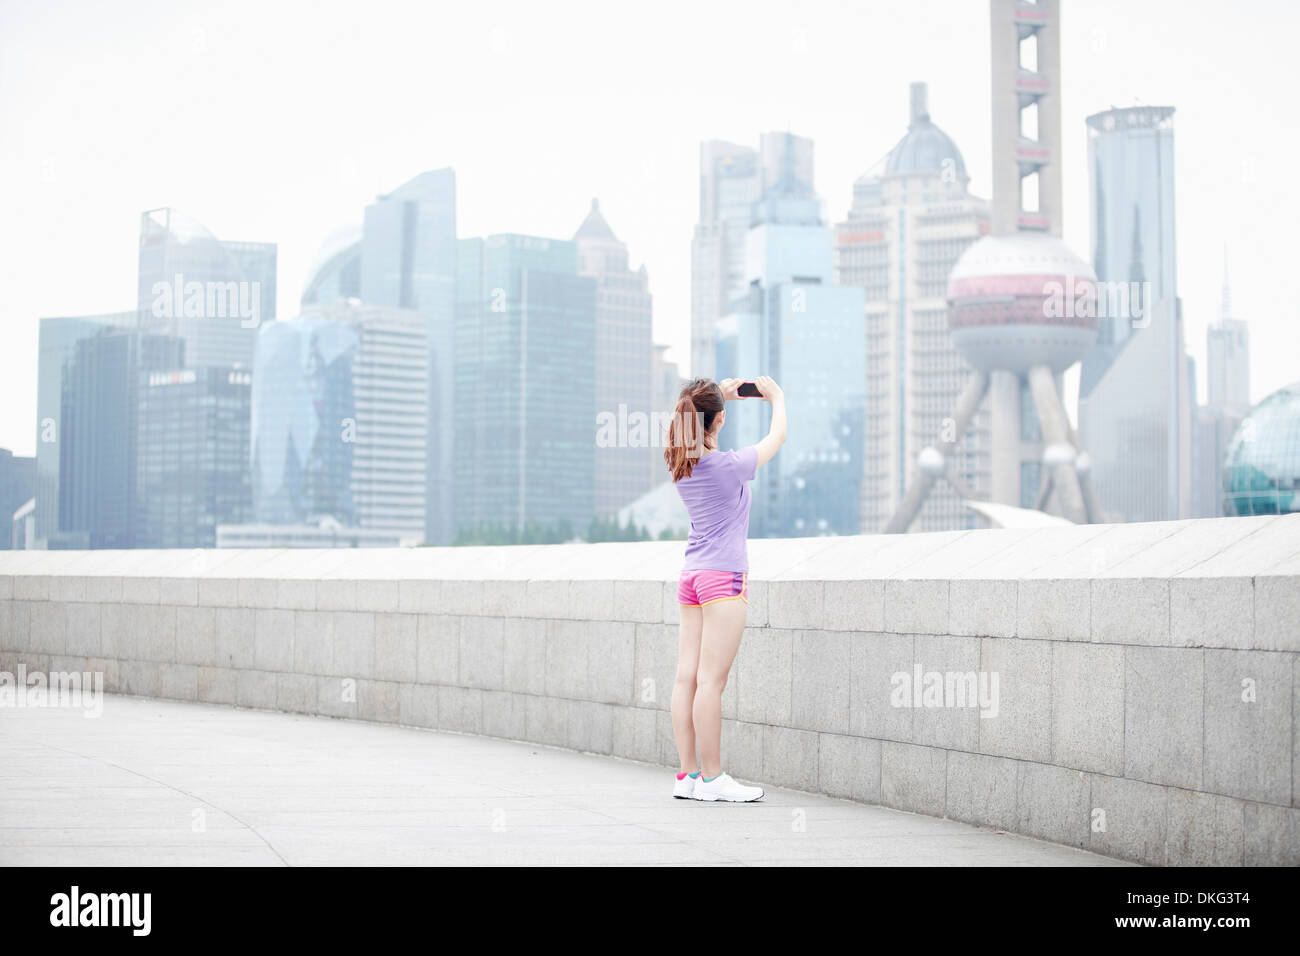 Young woman taking photograph of buildings in Pudong, Shanghai, China - Stock Image